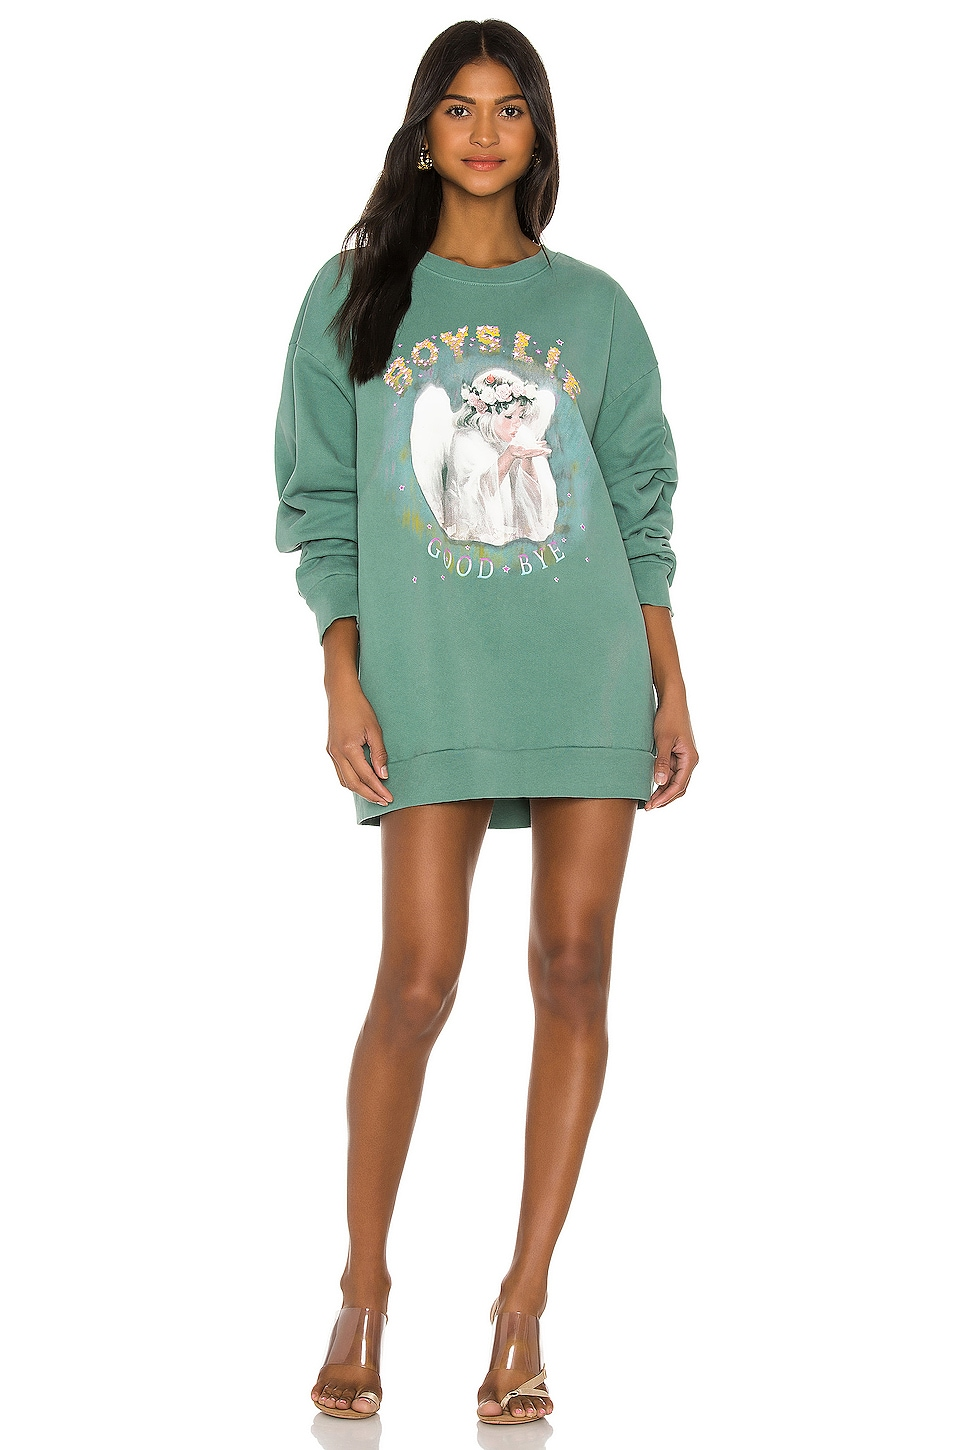 Boys Lie, Good Bye Crewneck             Boys Lie                                                                                                       CA$ 151.62 5